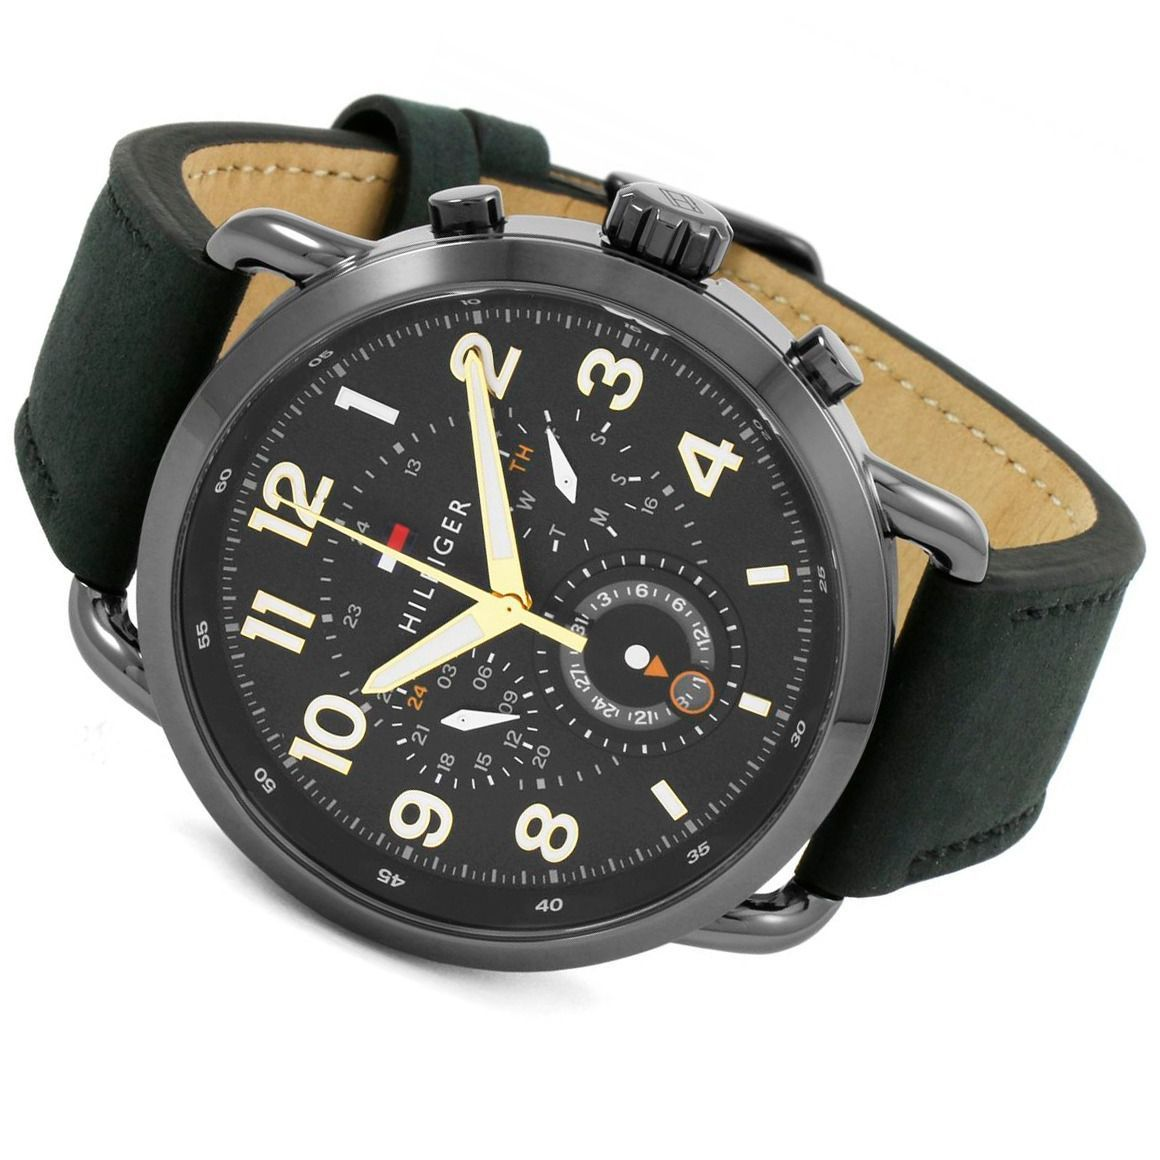 ... Tommy Hilfiger The Briggs Men s Black Leather Watch - 1791426-The Watch  Factory Australia ... 8e4a7f6bb76